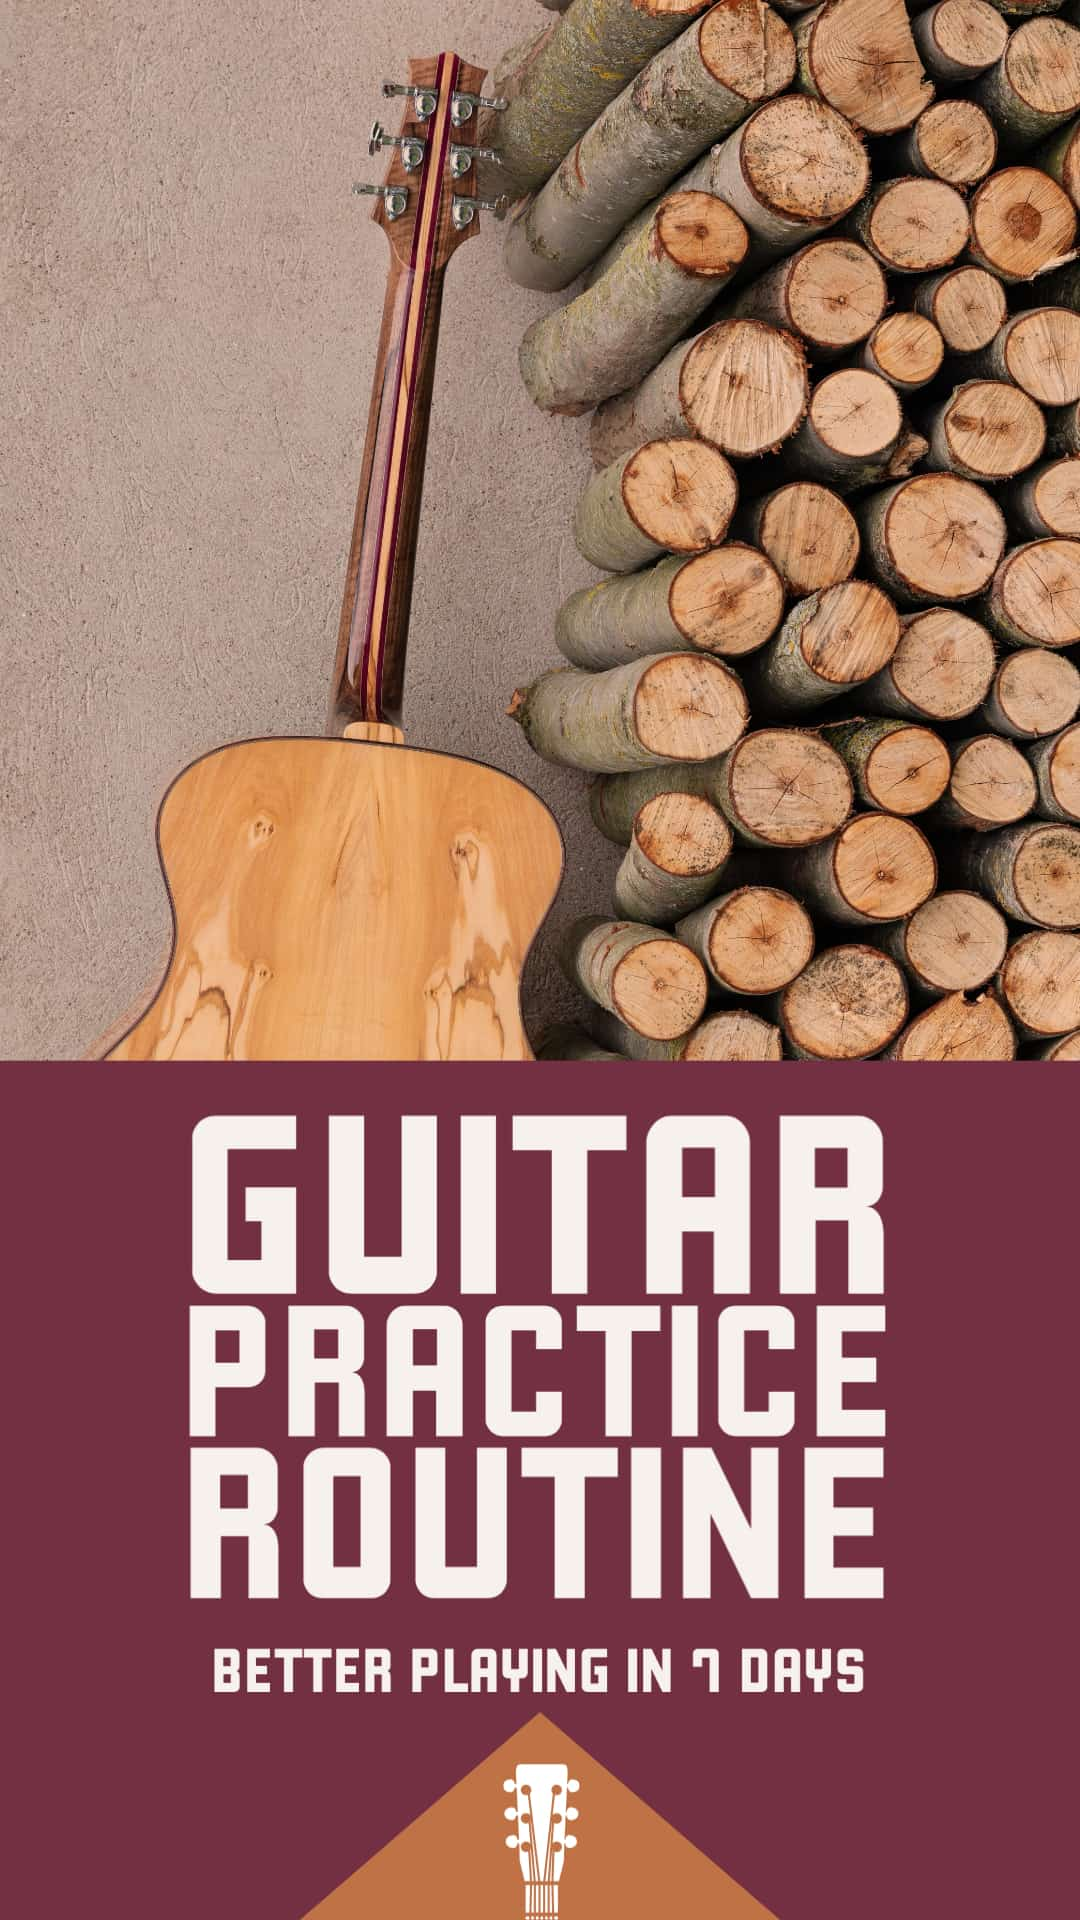 Guitar Practice - The 7 Day Technical Practice Routine